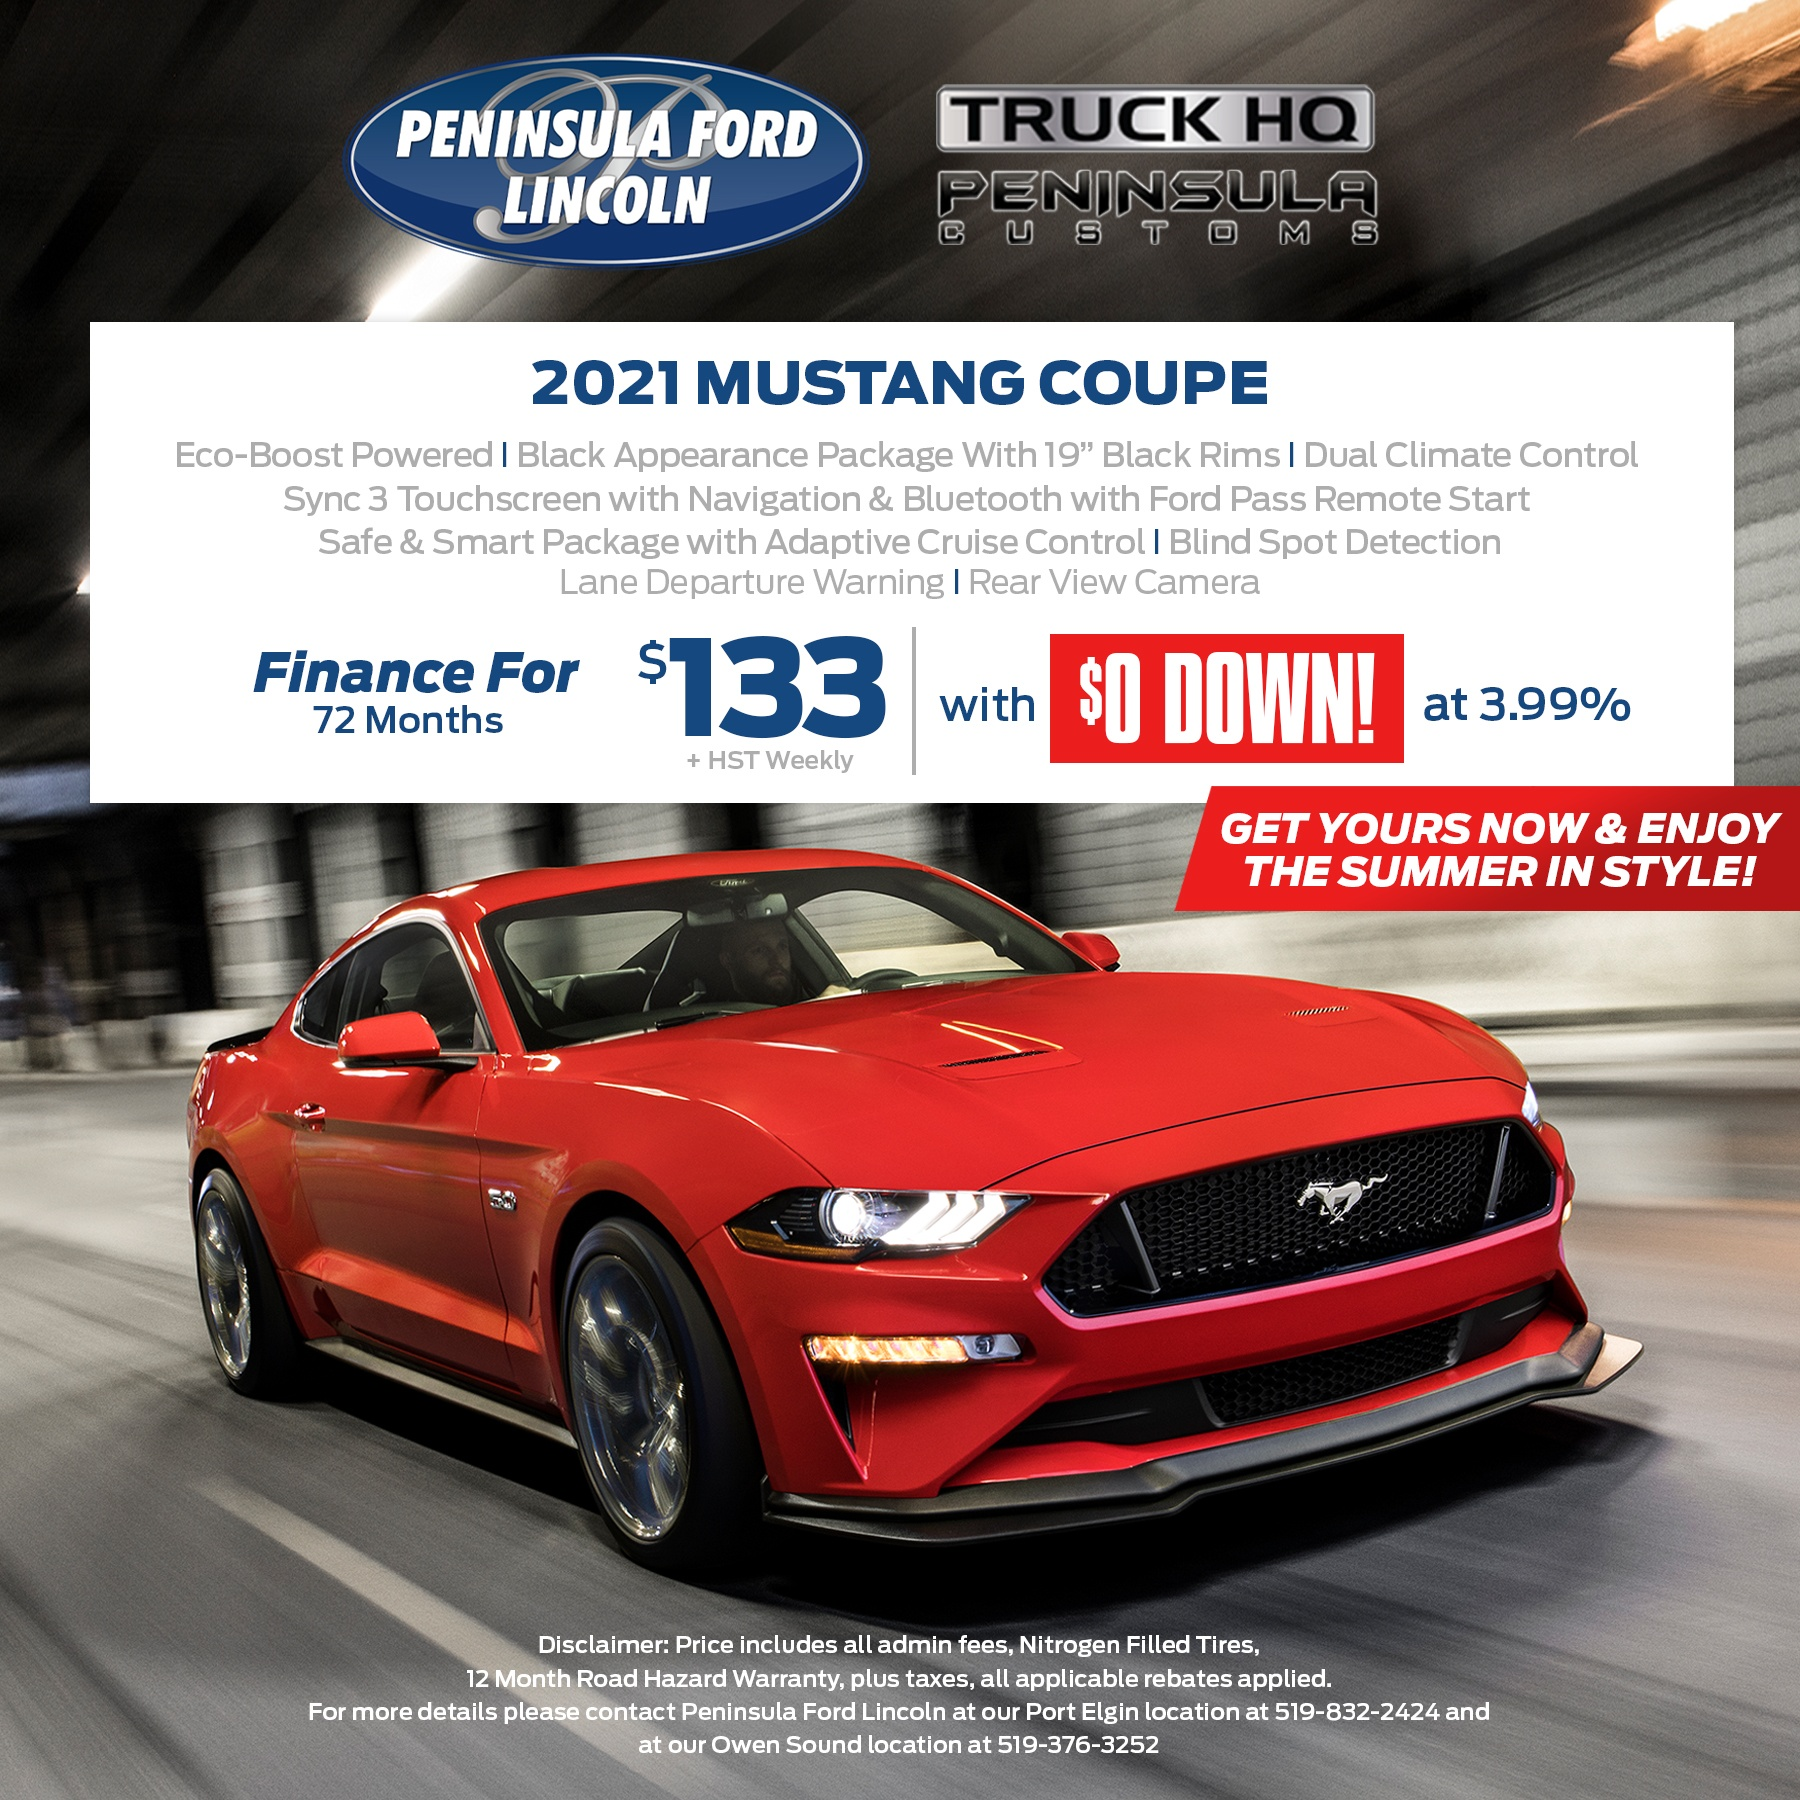 2021 Mustang Coupe